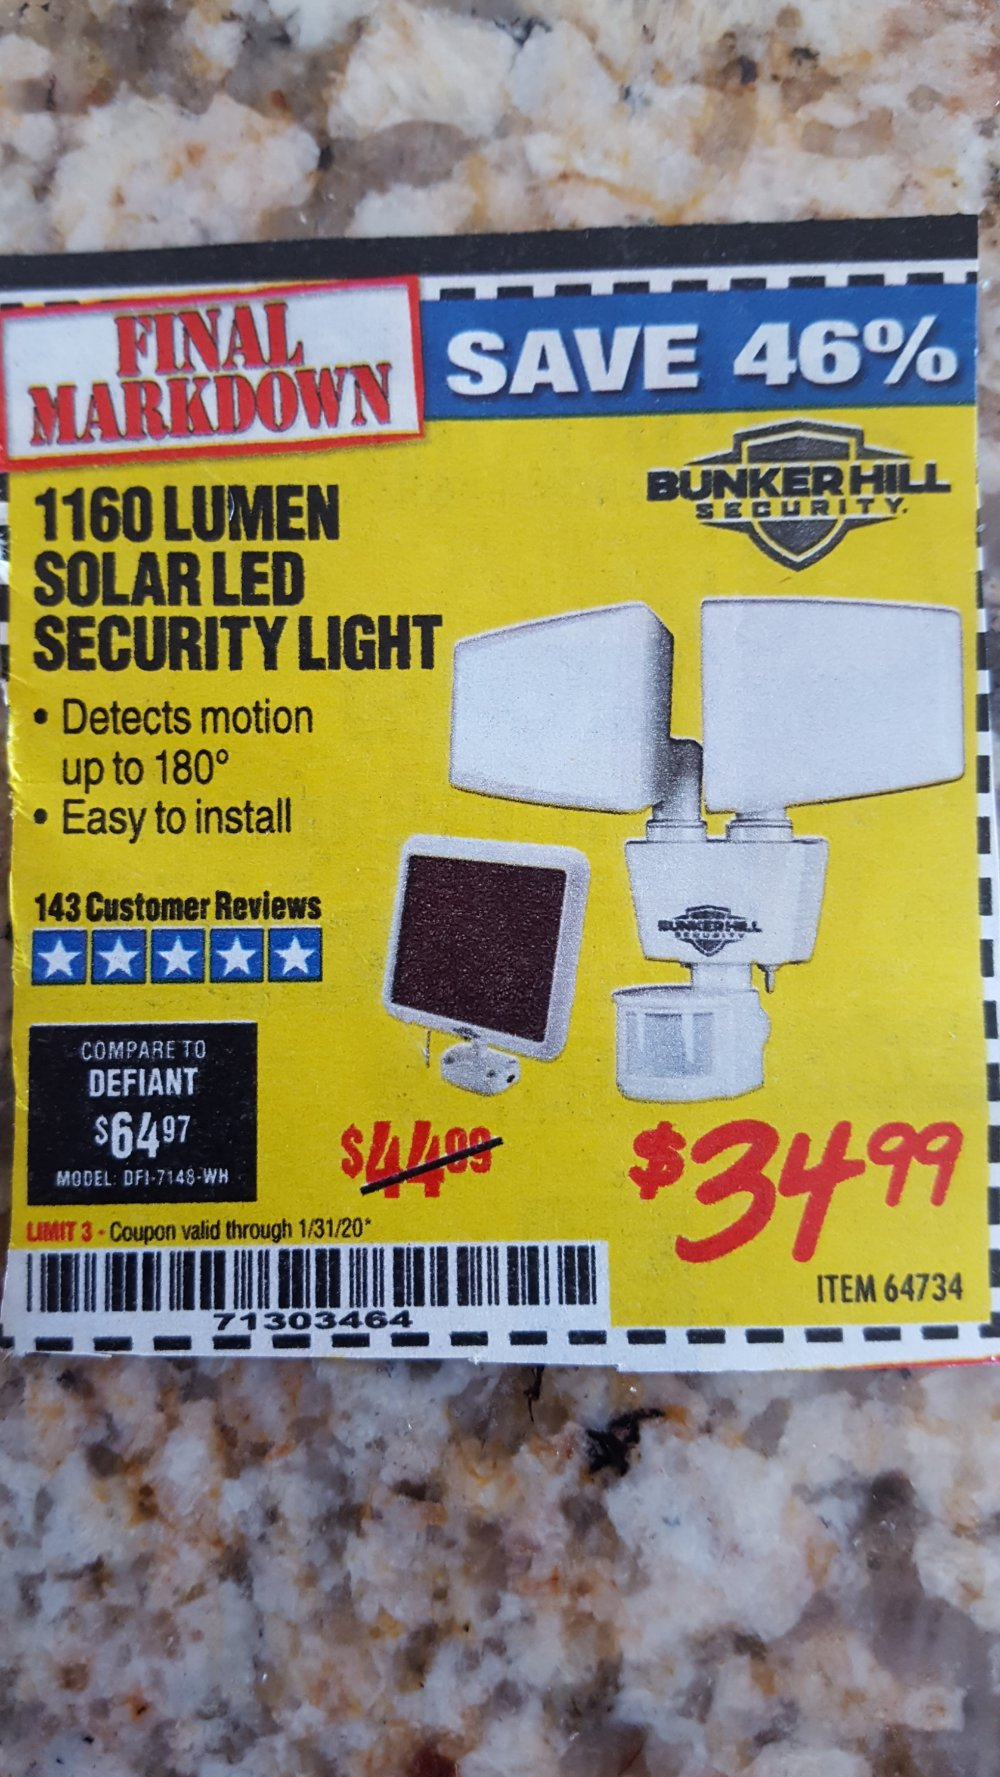 Harbor Freight Coupon, HF Coupons - 1160 Lumens Solar Led Security Light